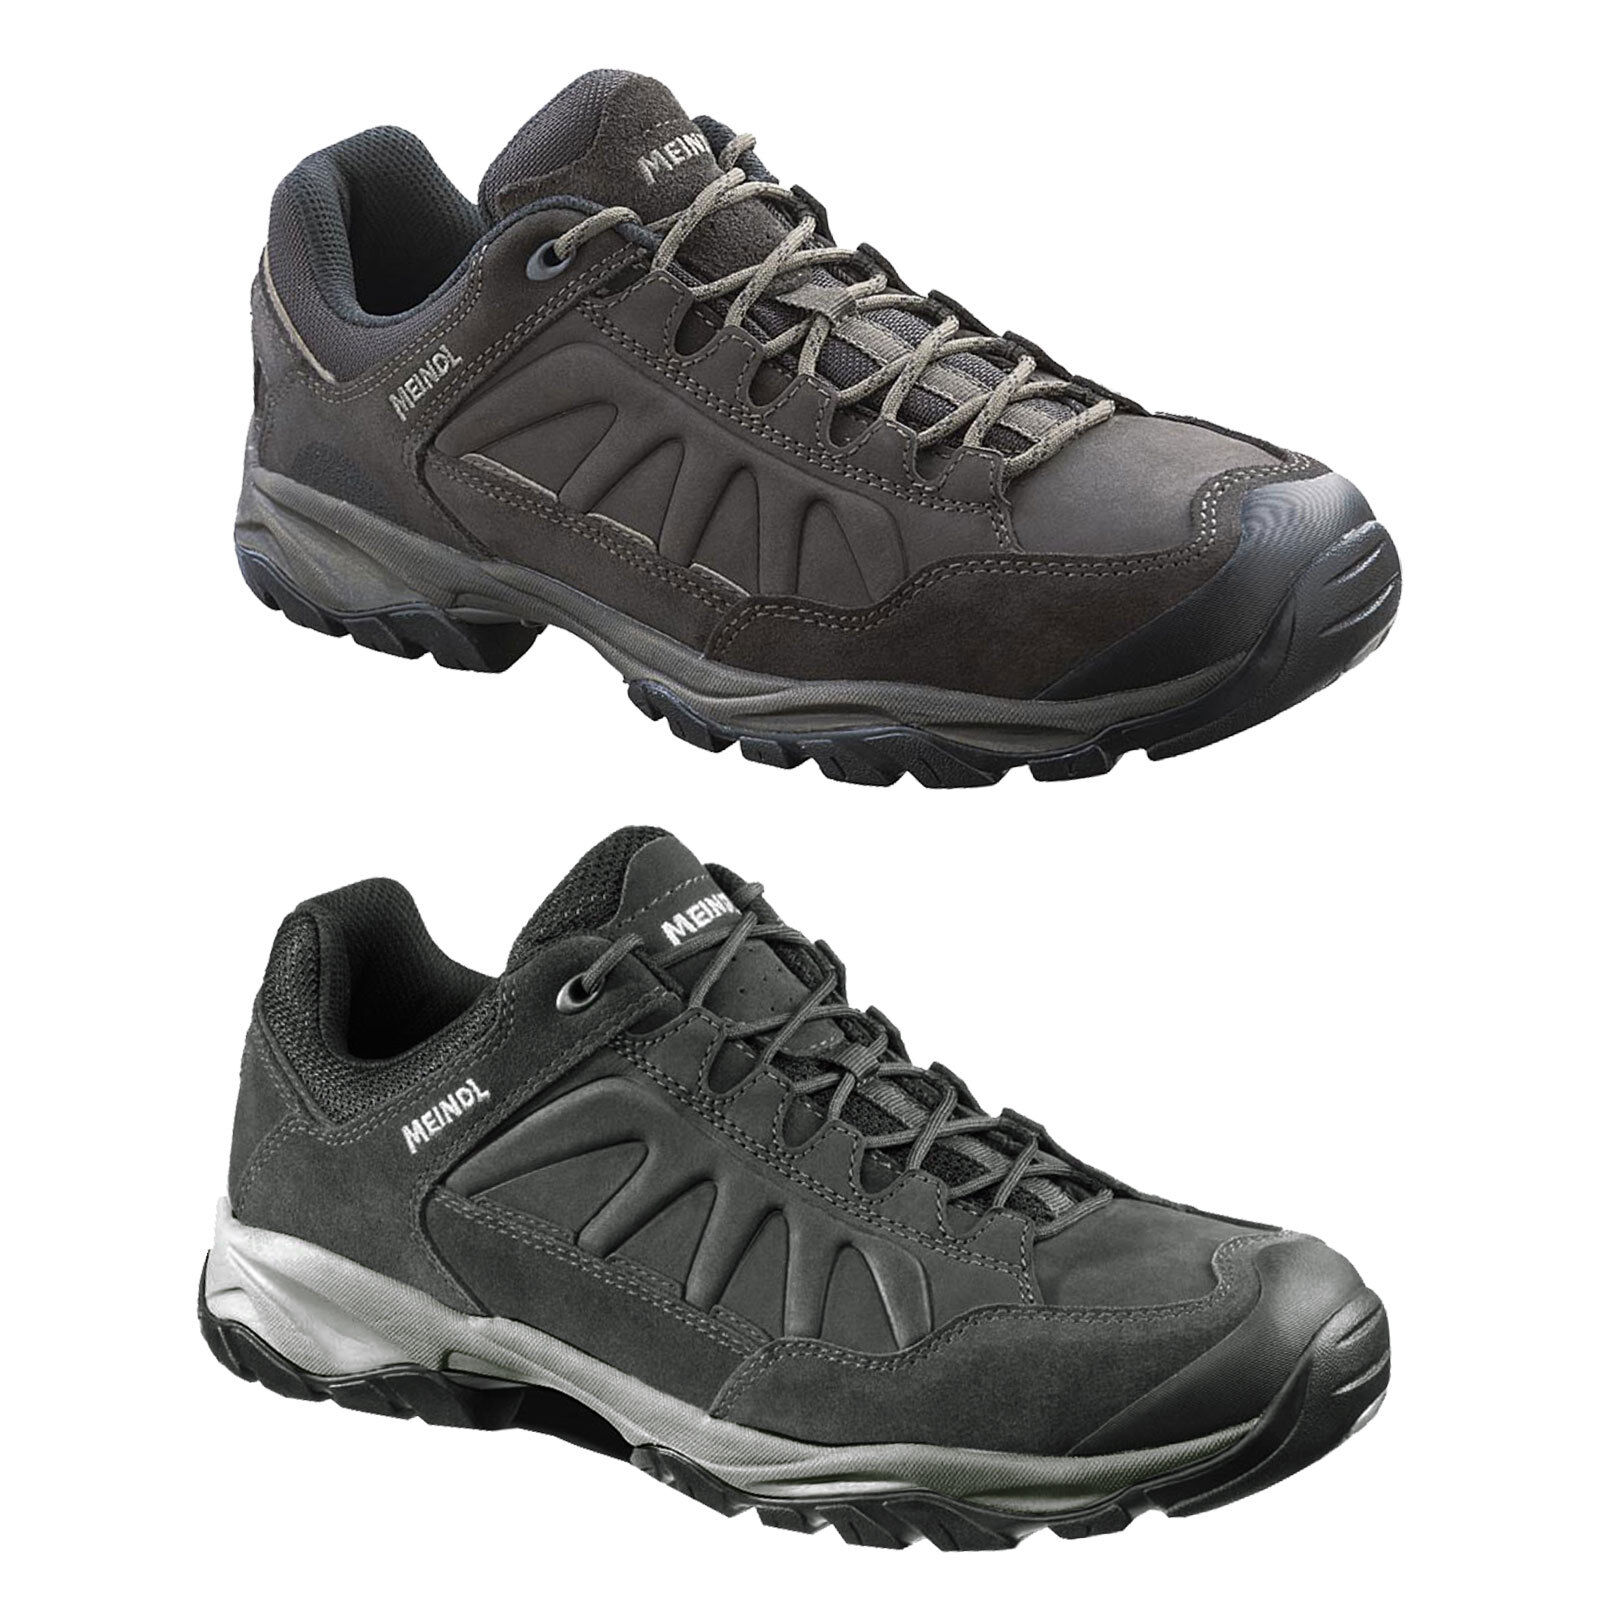 Meindl Nebraska Mens Trekking Shoes Outdoor Shoes Hiking Shoes Low Shoes New